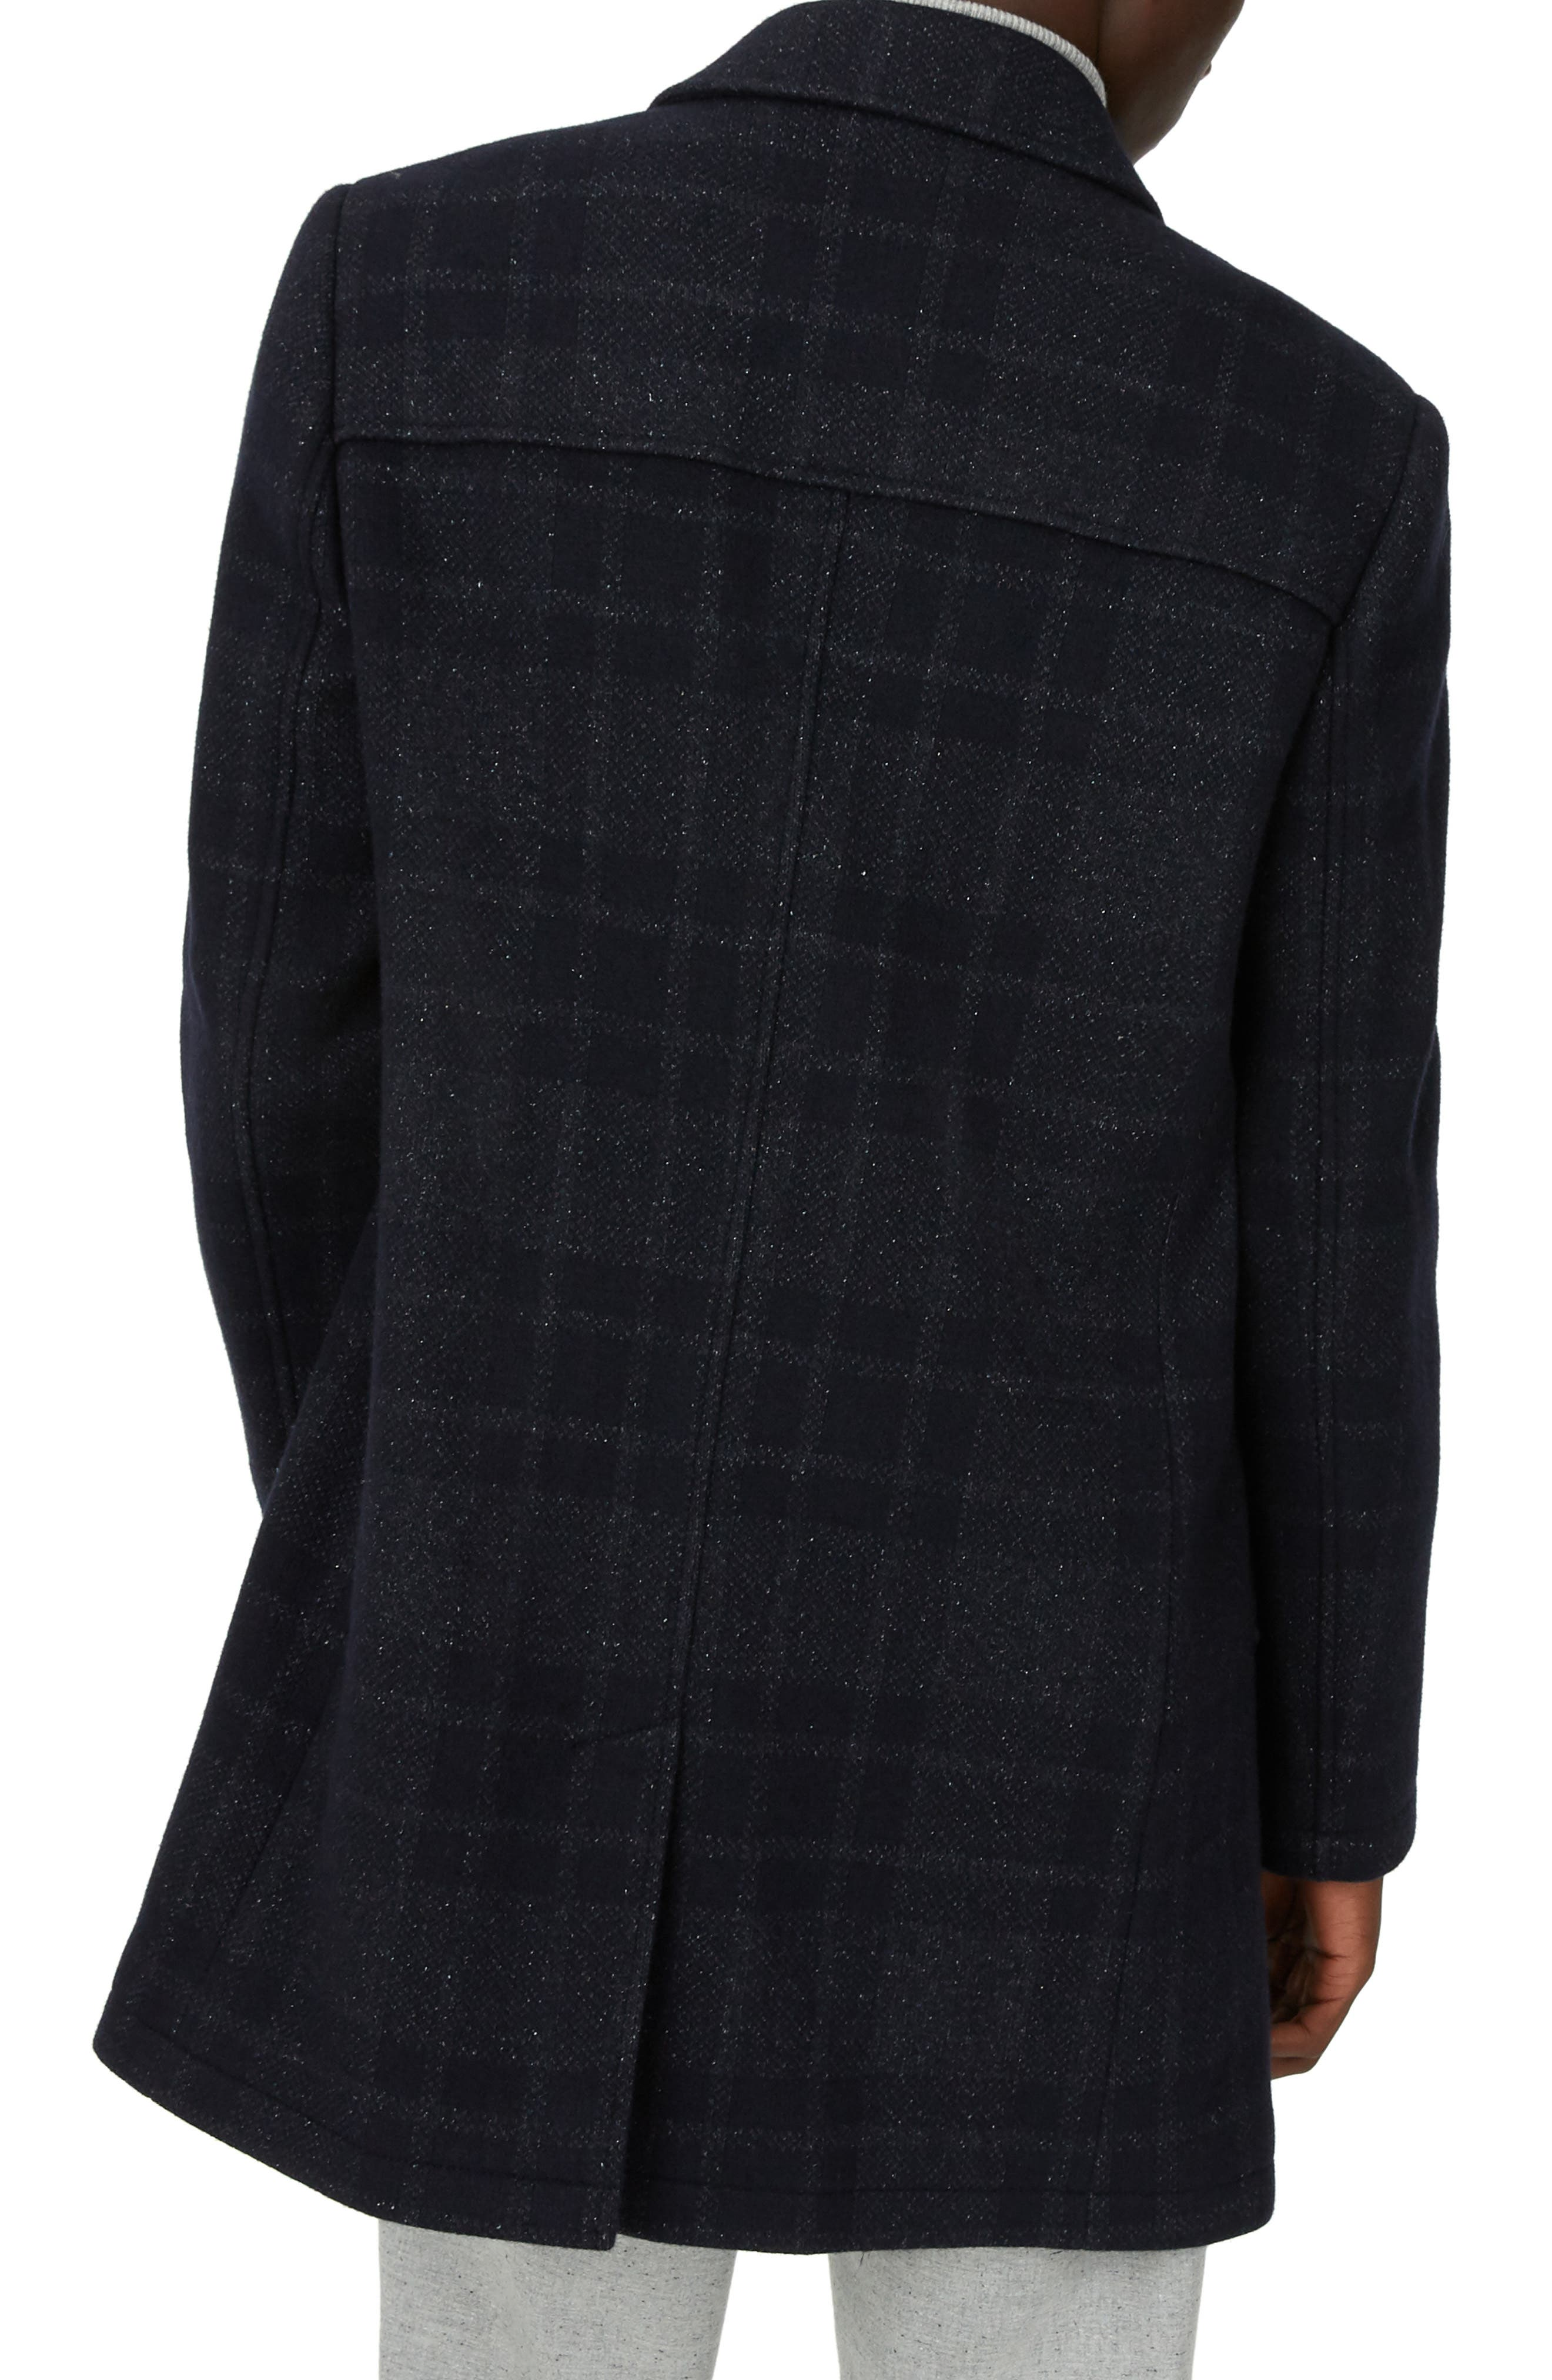 Luther Trim Fit Plaid Wool Blend Coat,                             Alternate thumbnail 2, color,                             NAVY MULTI